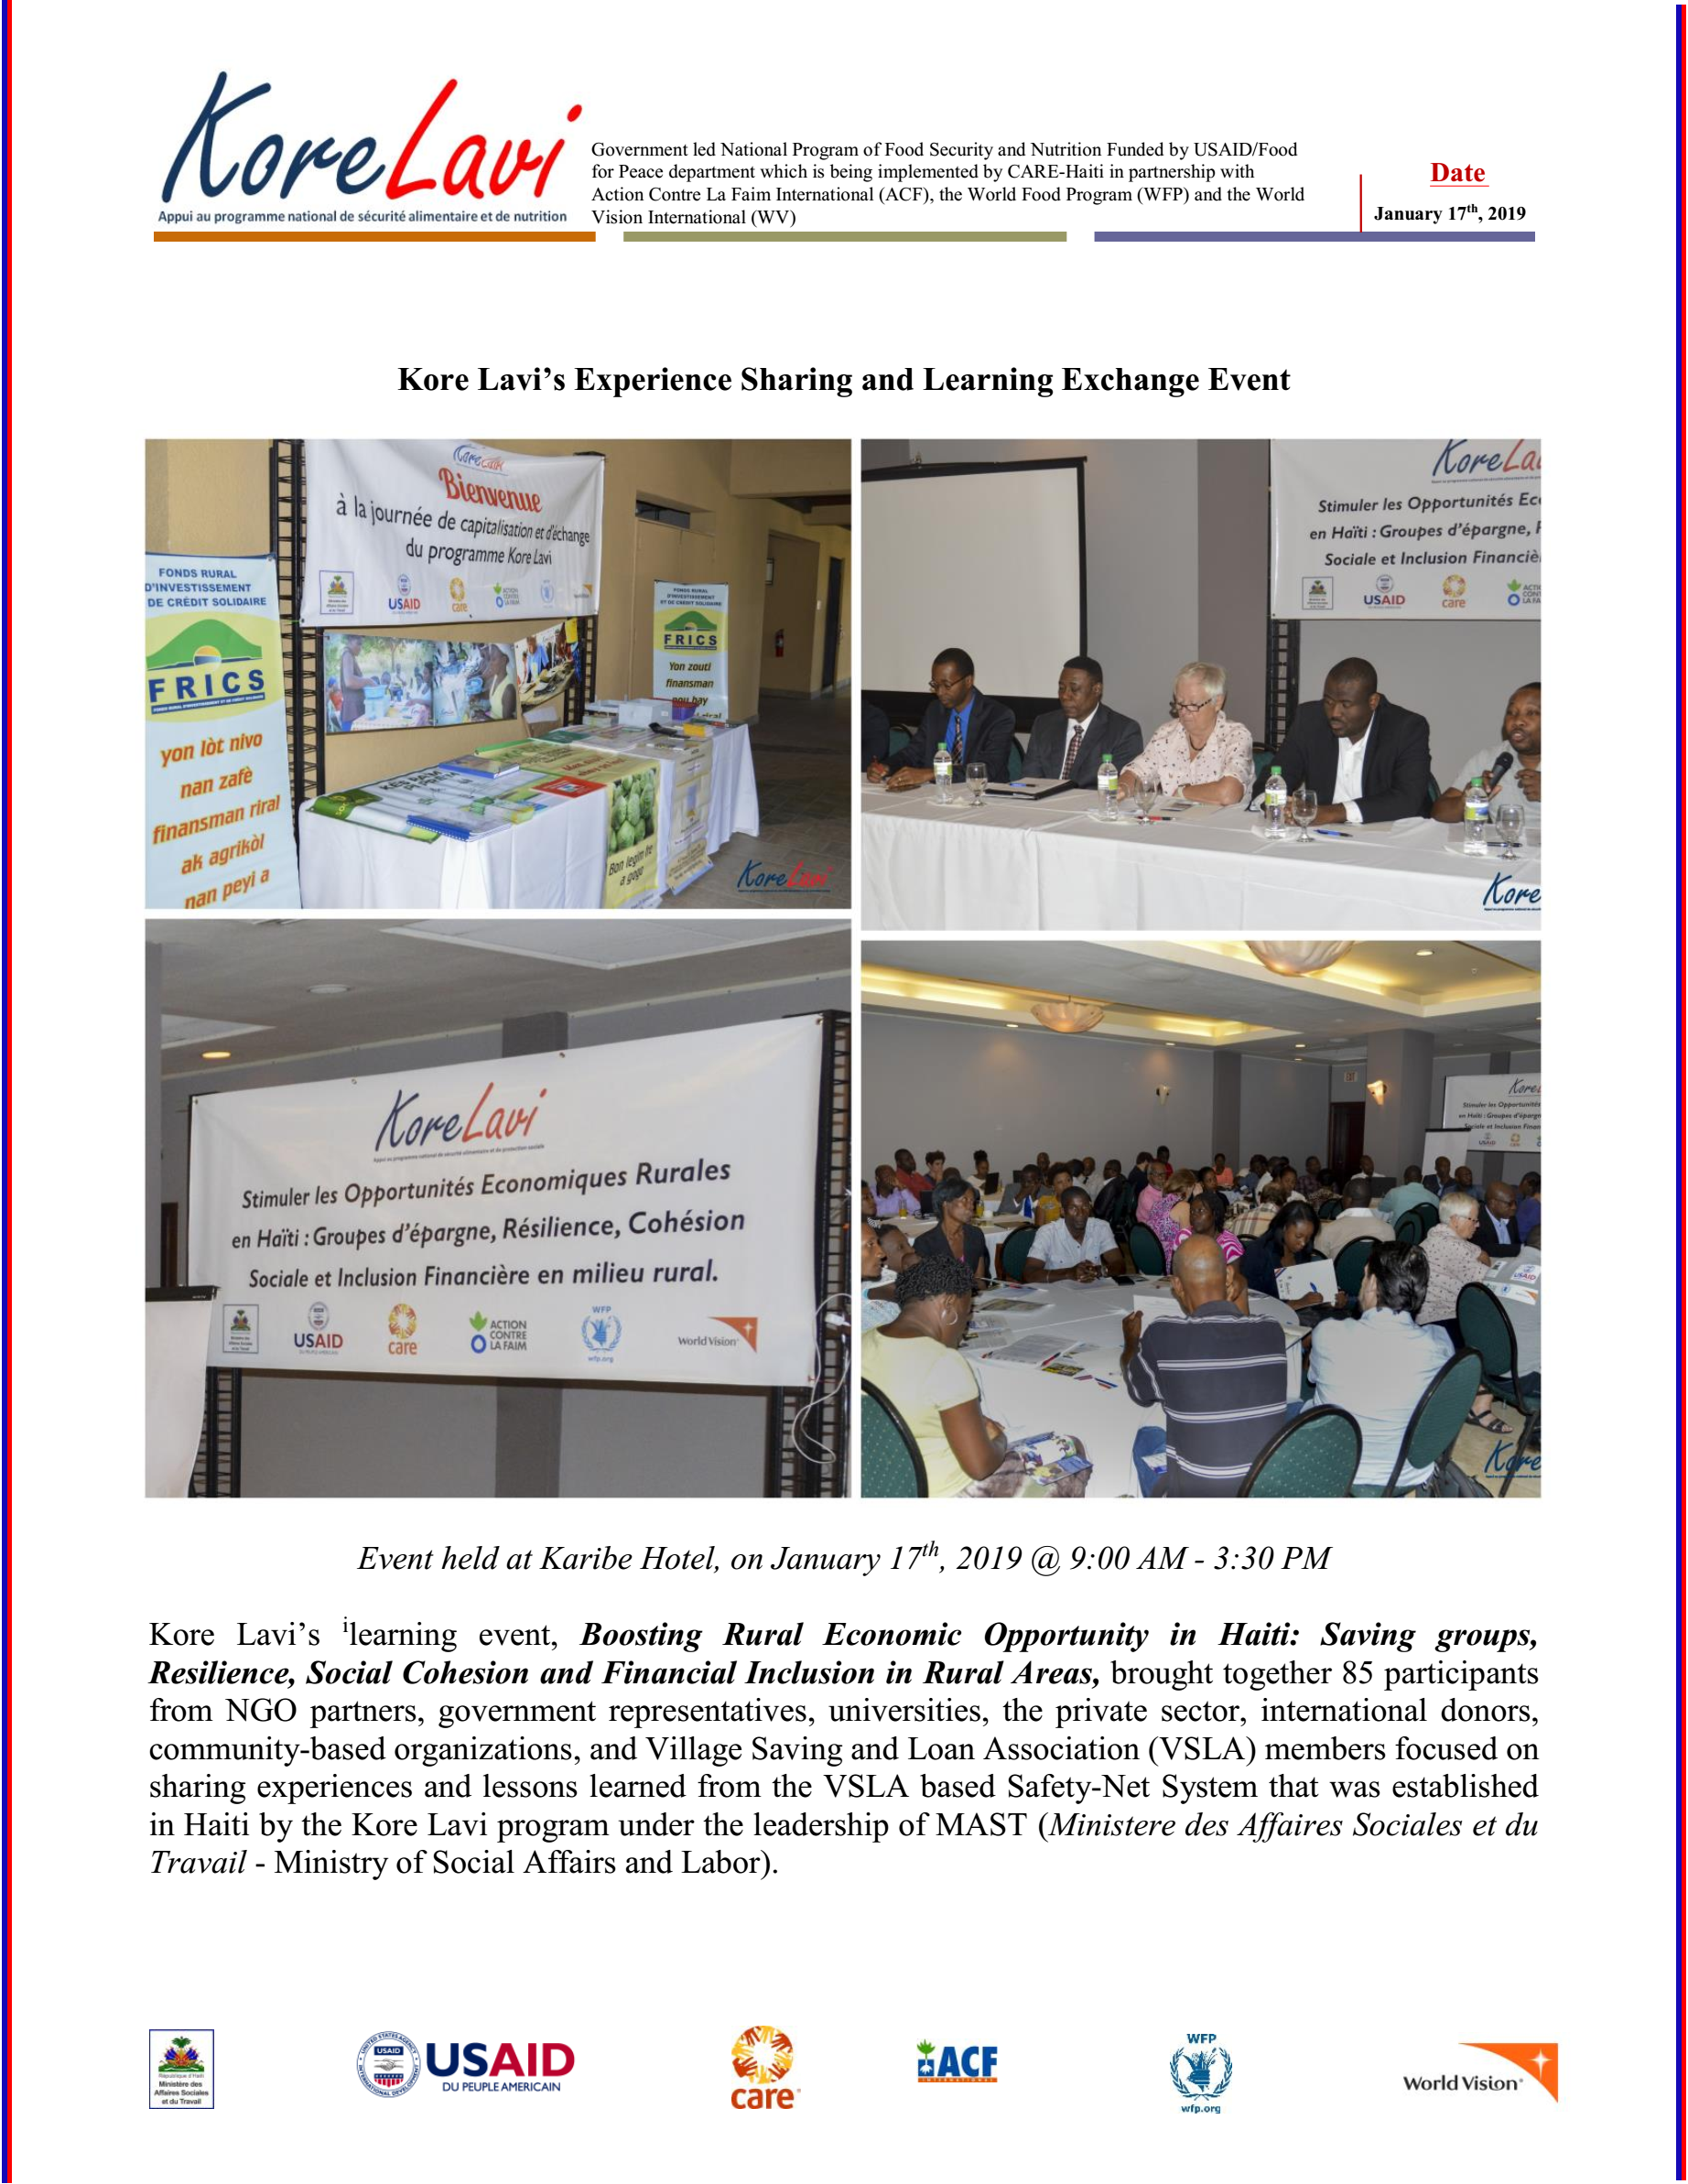 Kore Lavi's Experience Sharing and Learning Exchange Event